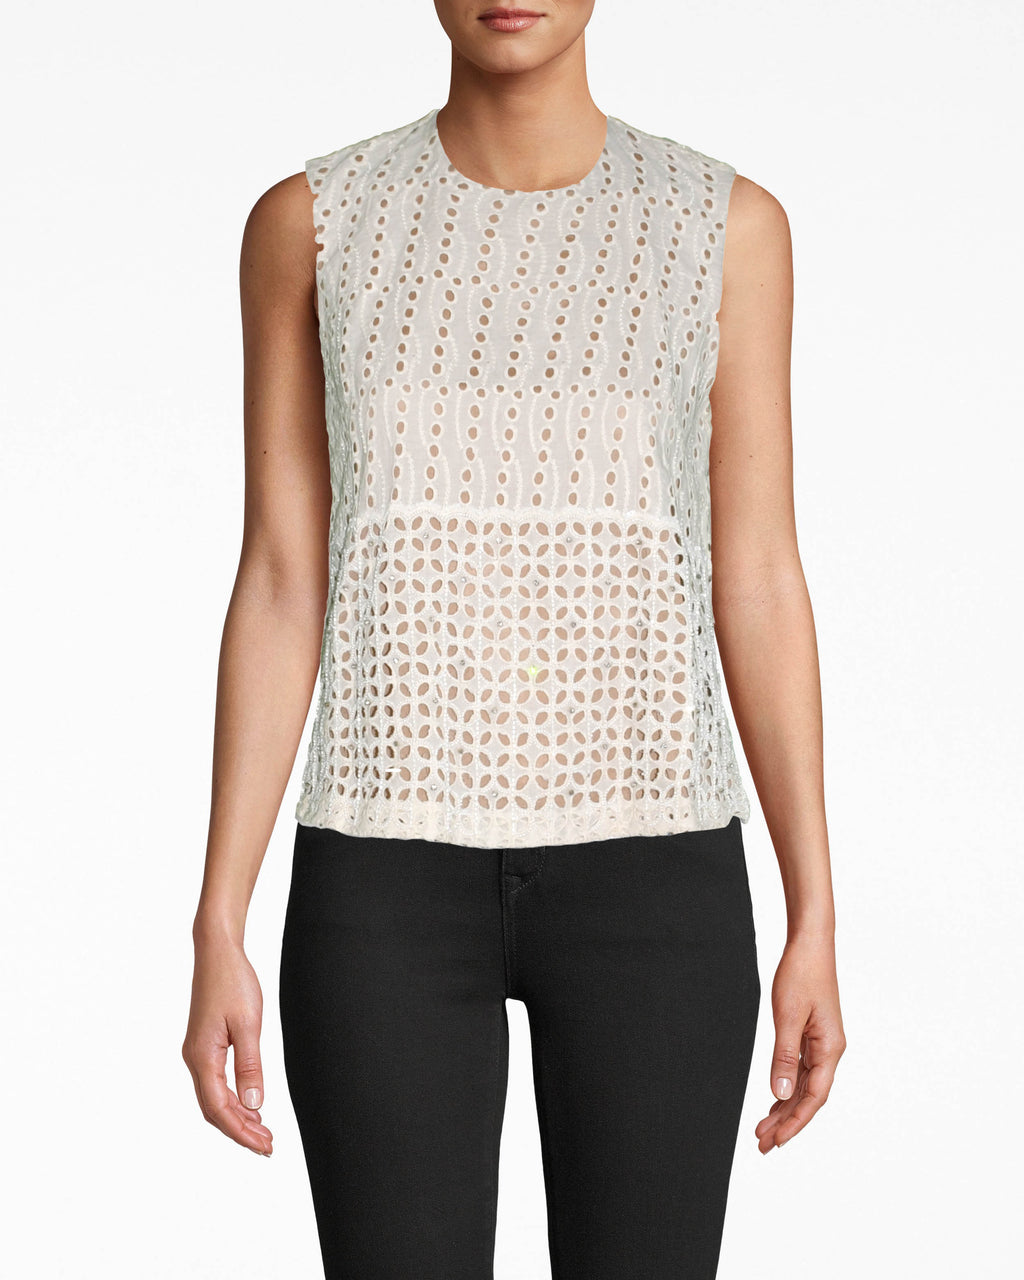 BM10227 - BEADED EYELET SHELL TOP - tops - shirts - THIS HIGH NECK TOP IS CRAFTED IN EYELET FABRIC AND DELICATELY BEADED THROUGHOUT. THIS SLEEVELESS TOP IS FULLY LINED WITH A BACK BUTTON FOR CLOSURE. Add 1 line break STYLIST TIP: WEAR WITH THE MATCHING SKIRT FOR A STATEMENT, MONOCHROME LOOK.